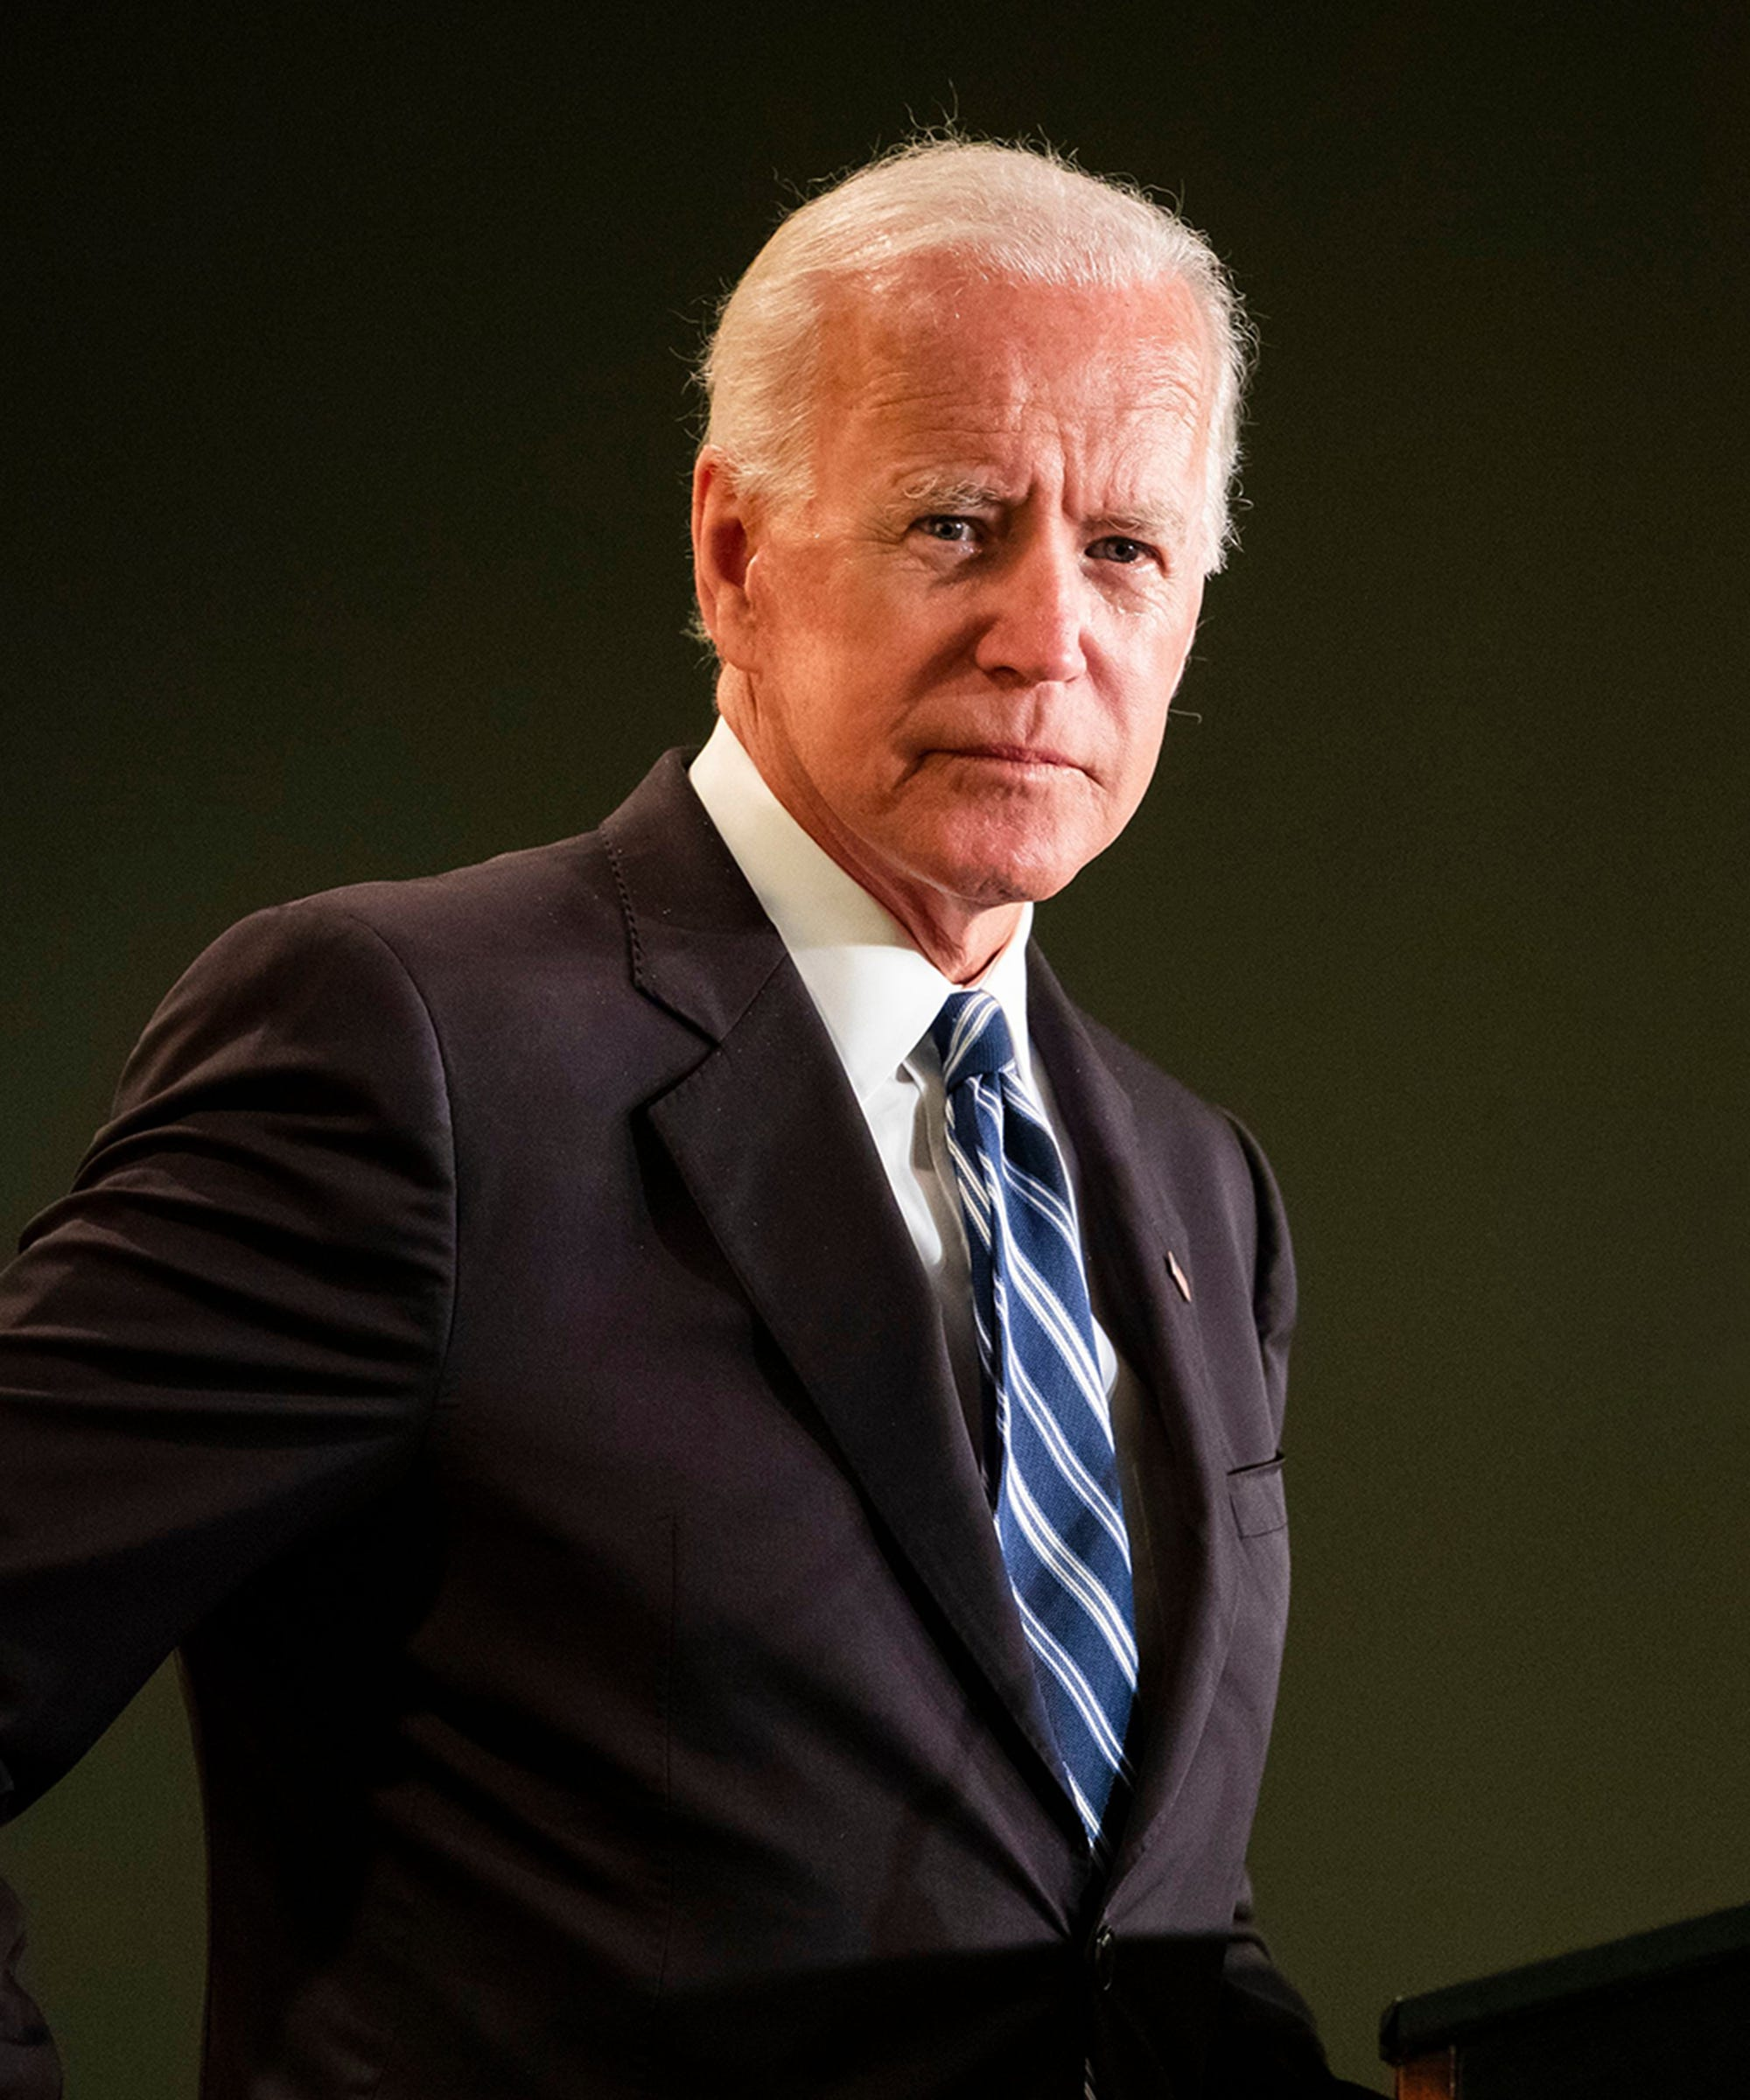 Two Women Have Now Accused Joe Biden Of Inappropriate Touching